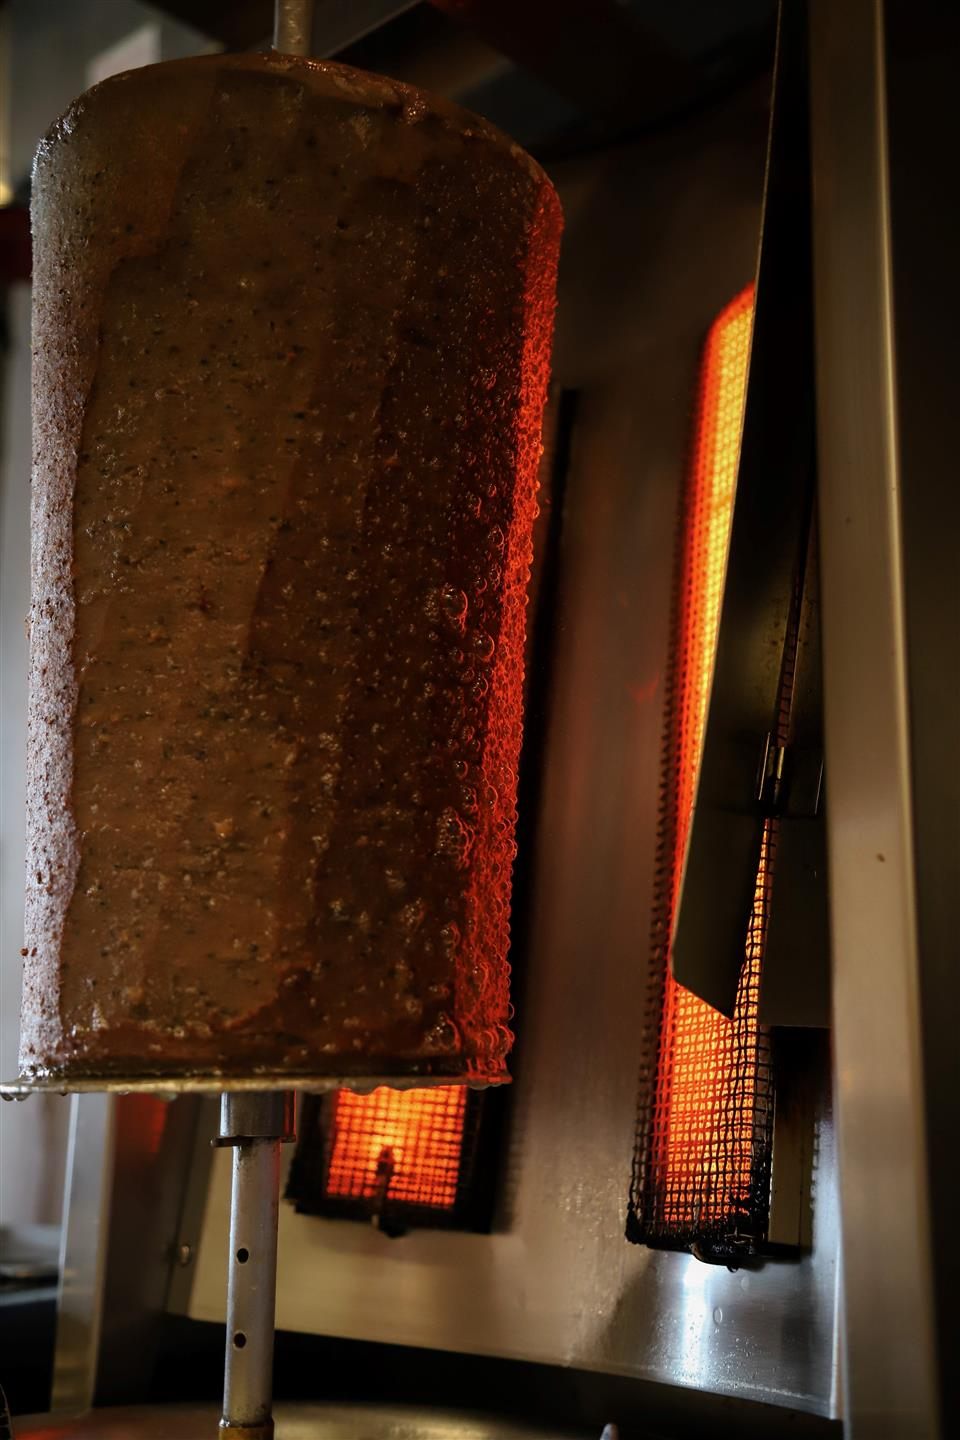 shawarma meat on a vertical broiler